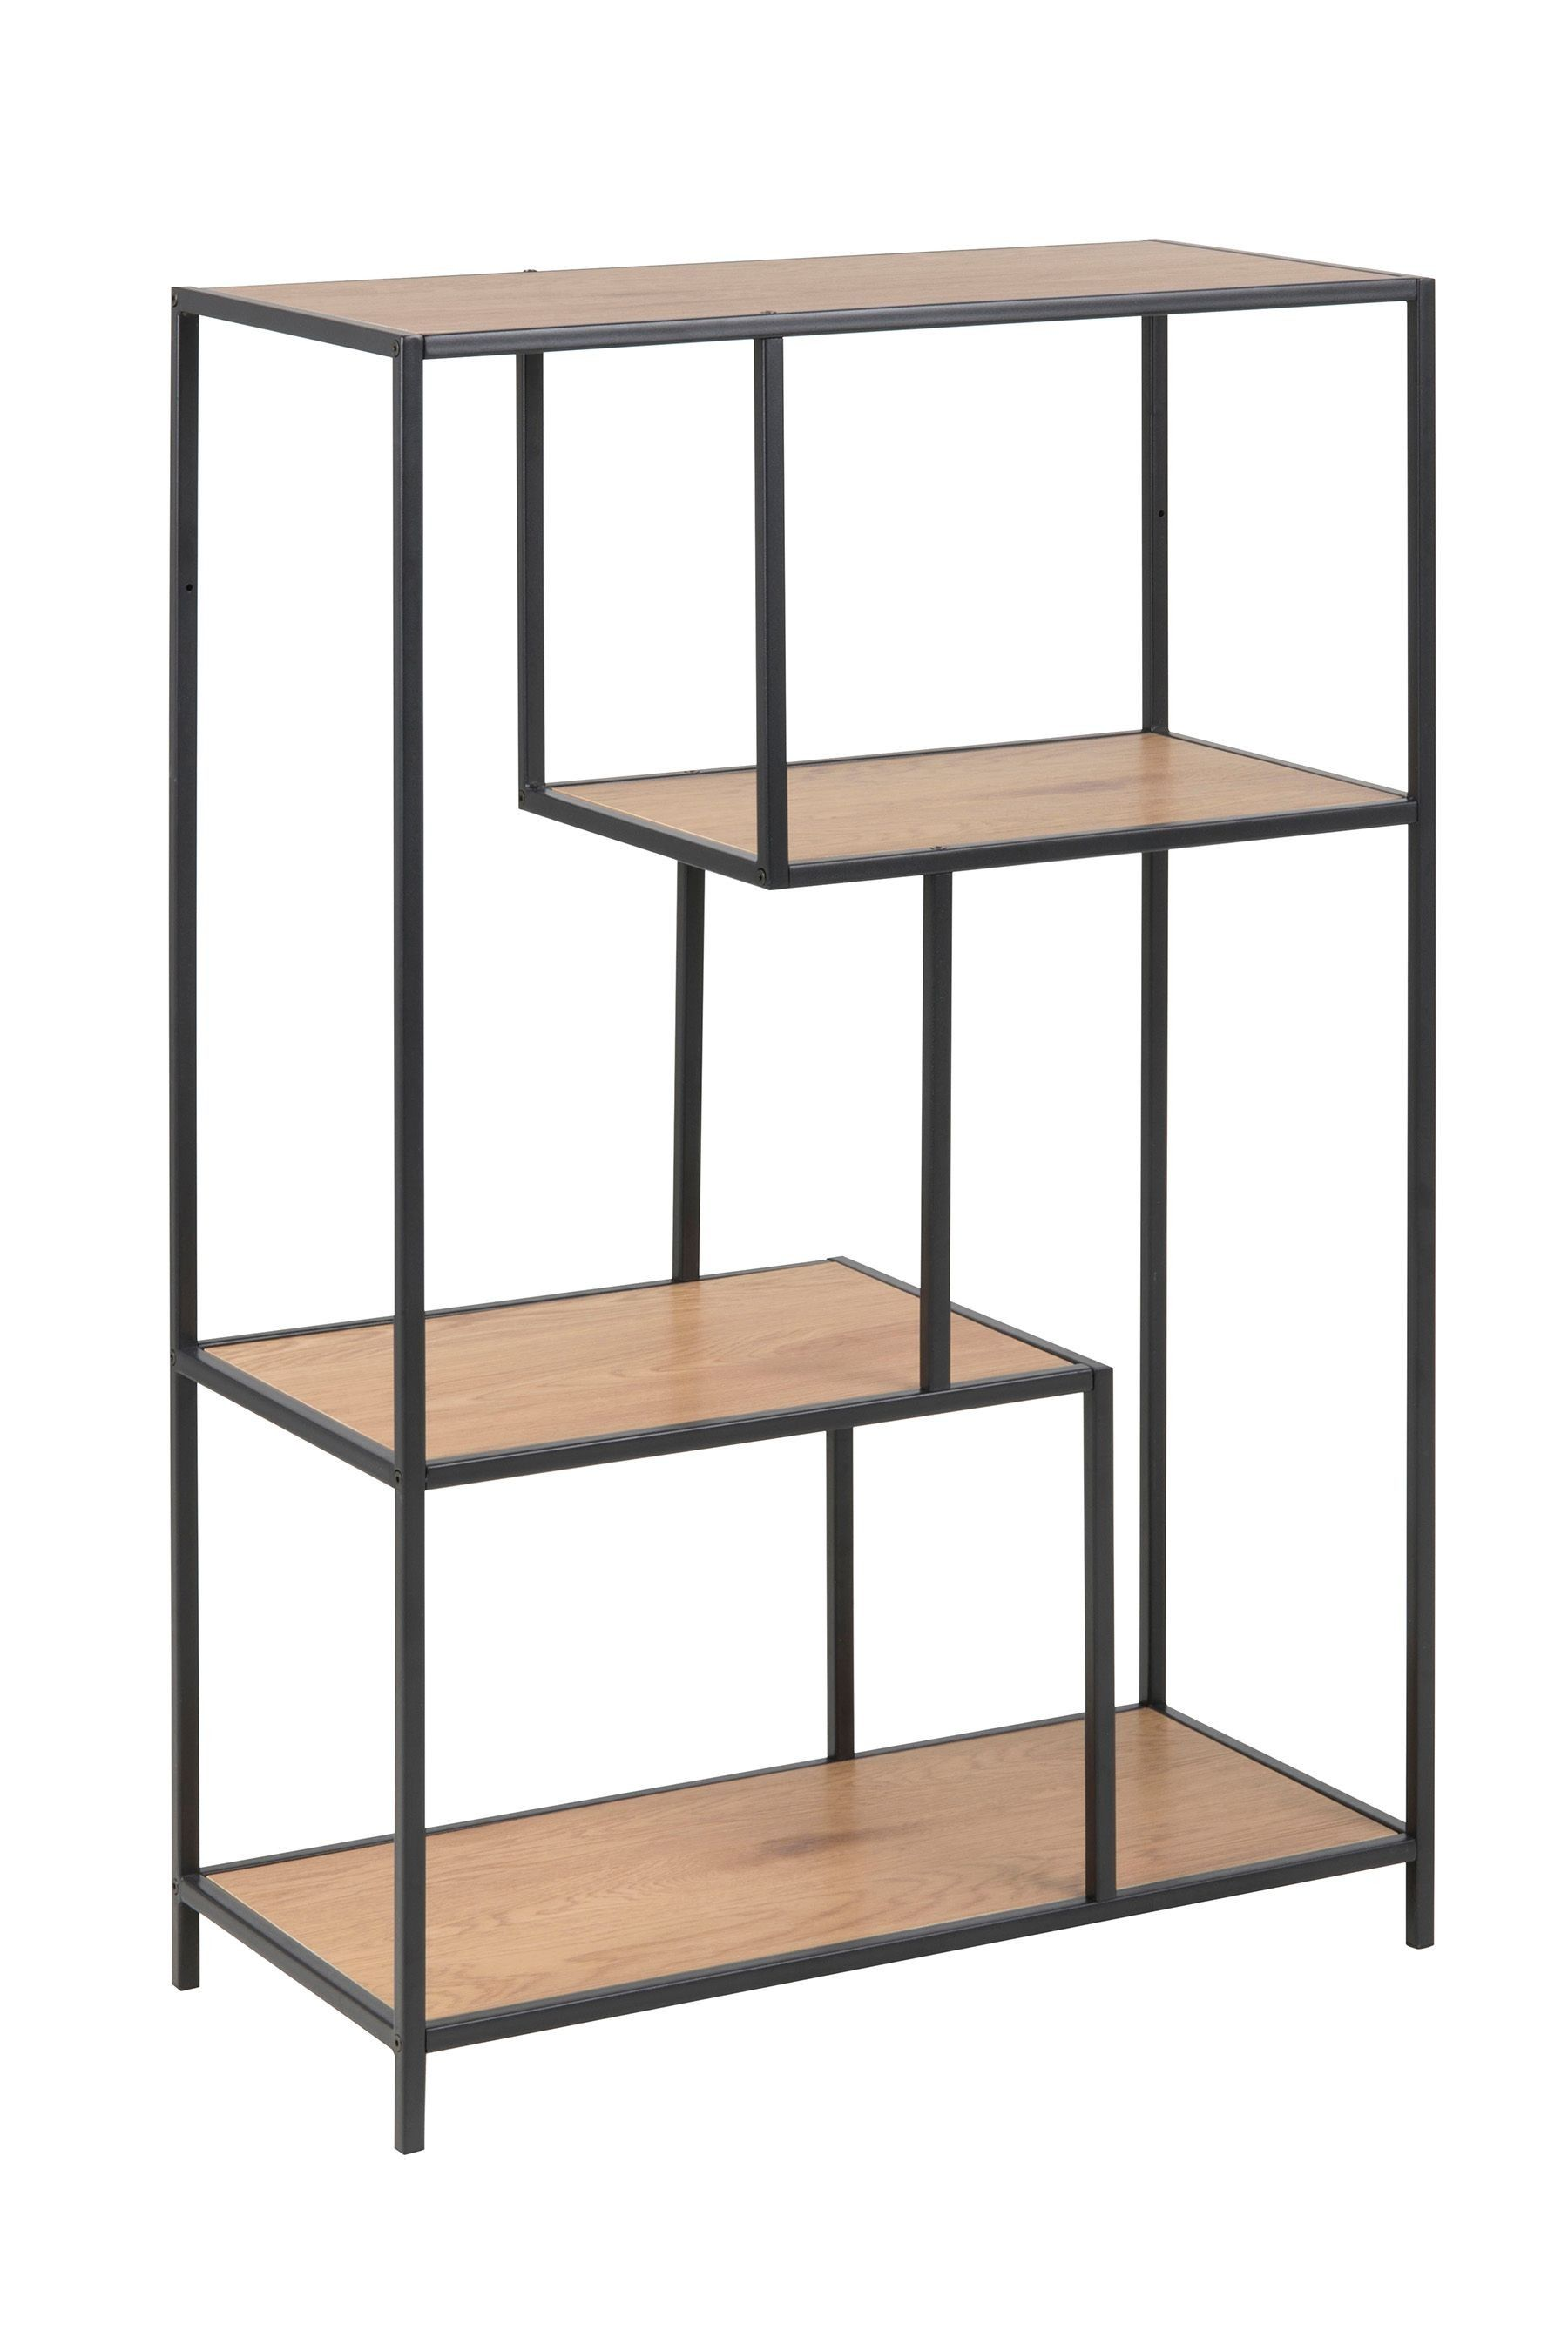 Seaford Mid Shelf By Actona In 2019 | Shelves, Furniture